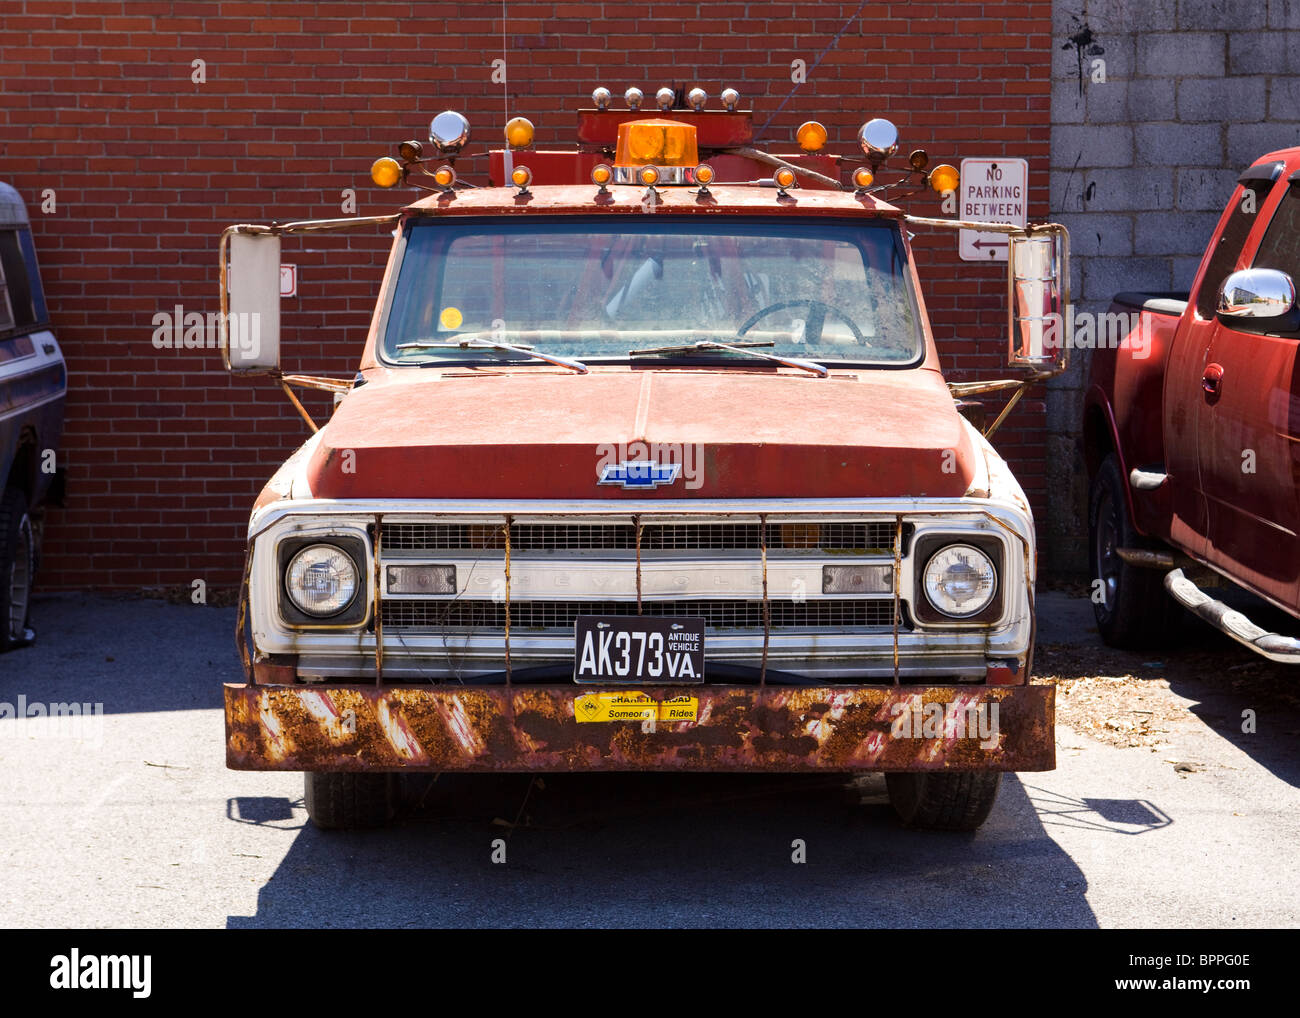 1969 Chevy Tow Truck Stock Photo 31228302